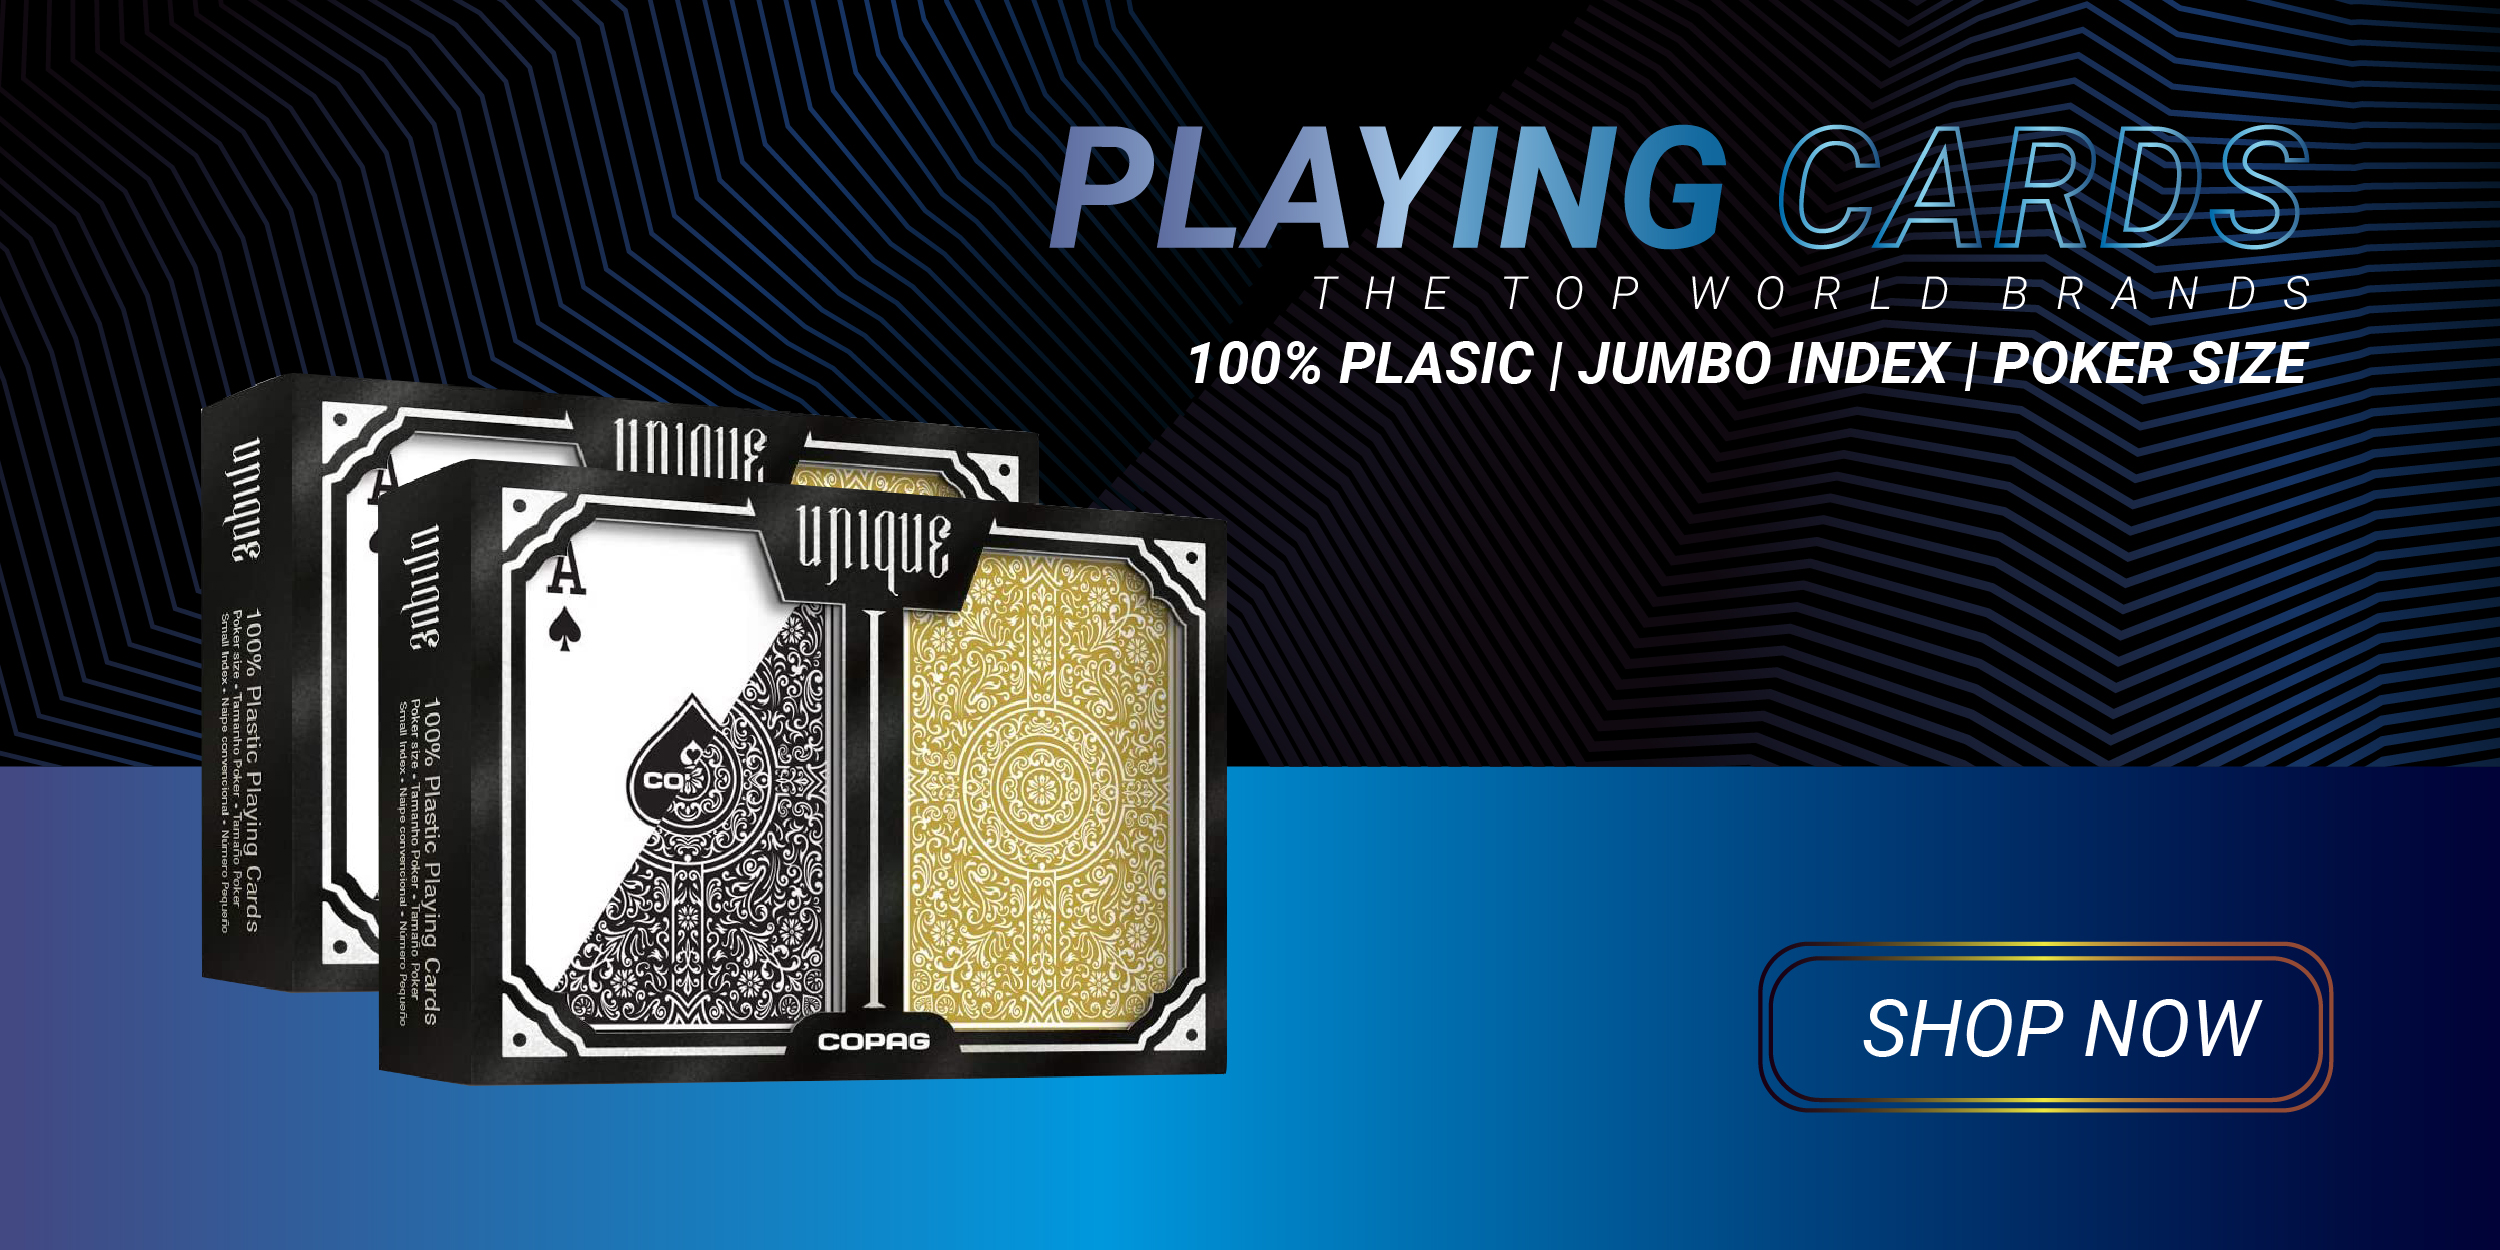 Playing Card 100% plastic